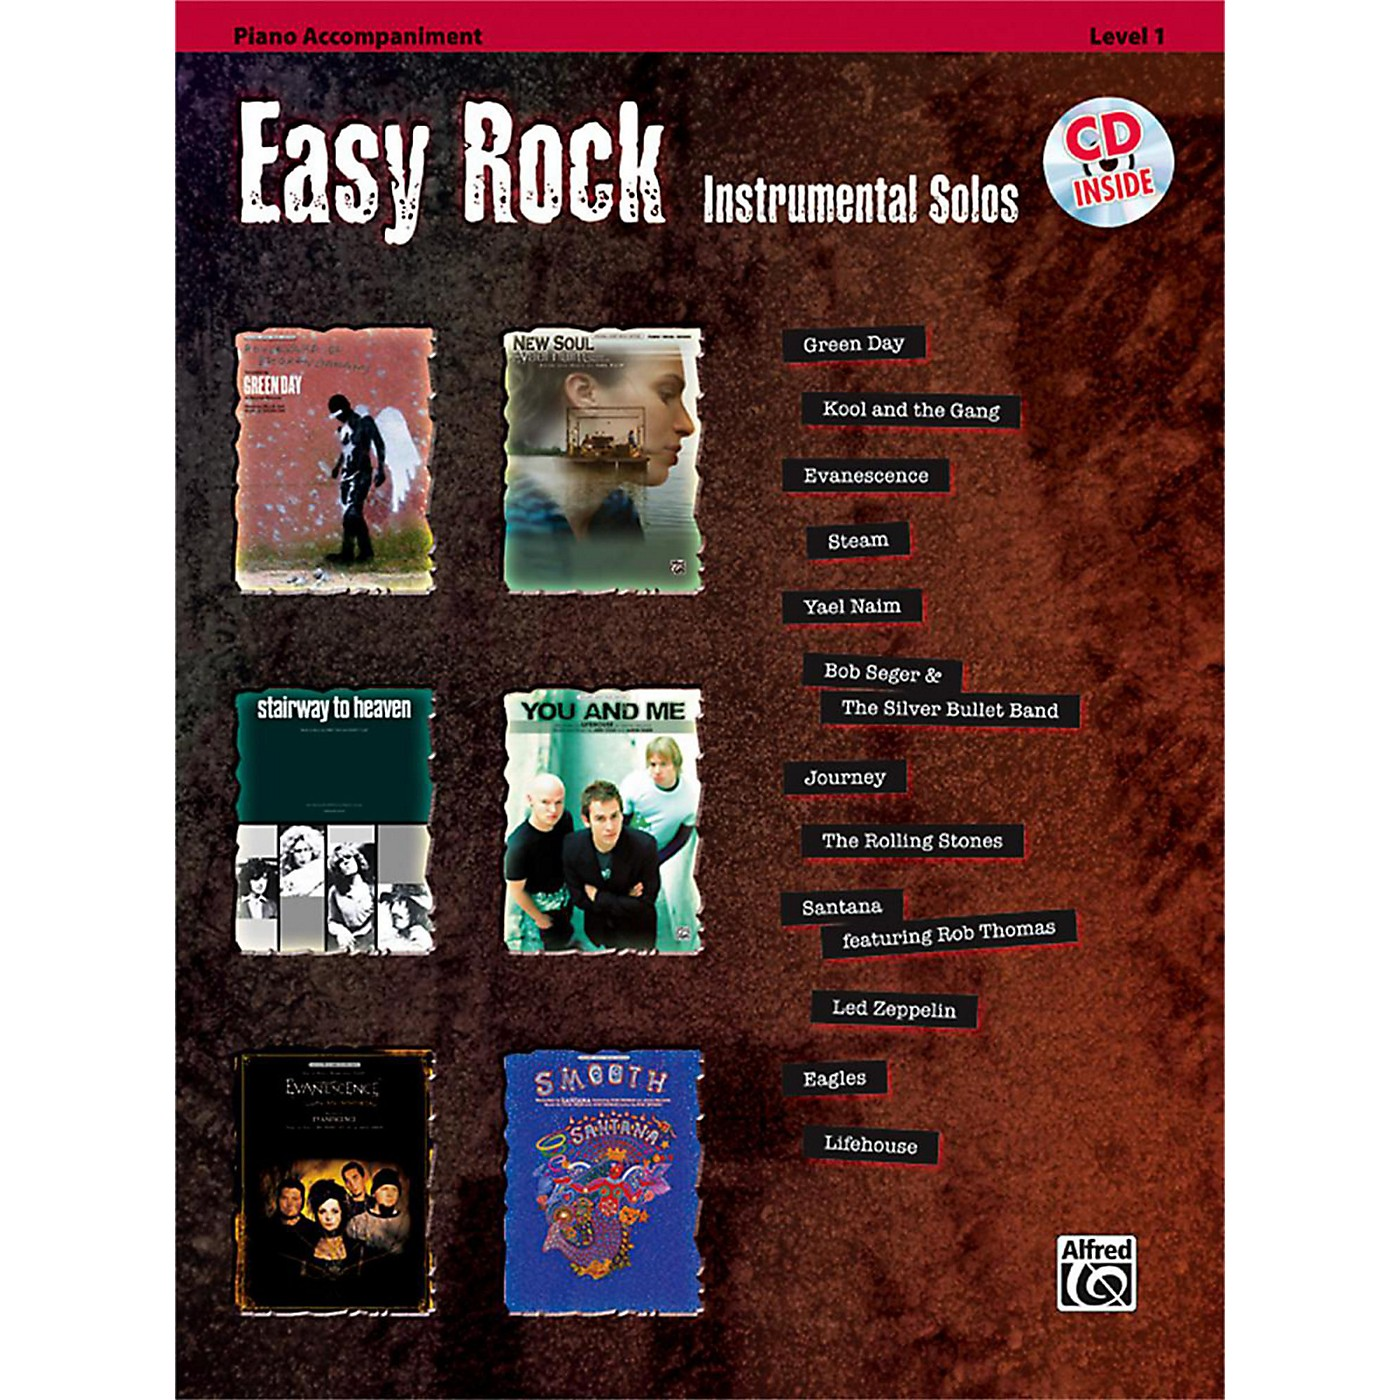 Alfred Easy Rock Instrumental Solos Level 1 Piano Acc. Book & CD thumbnail